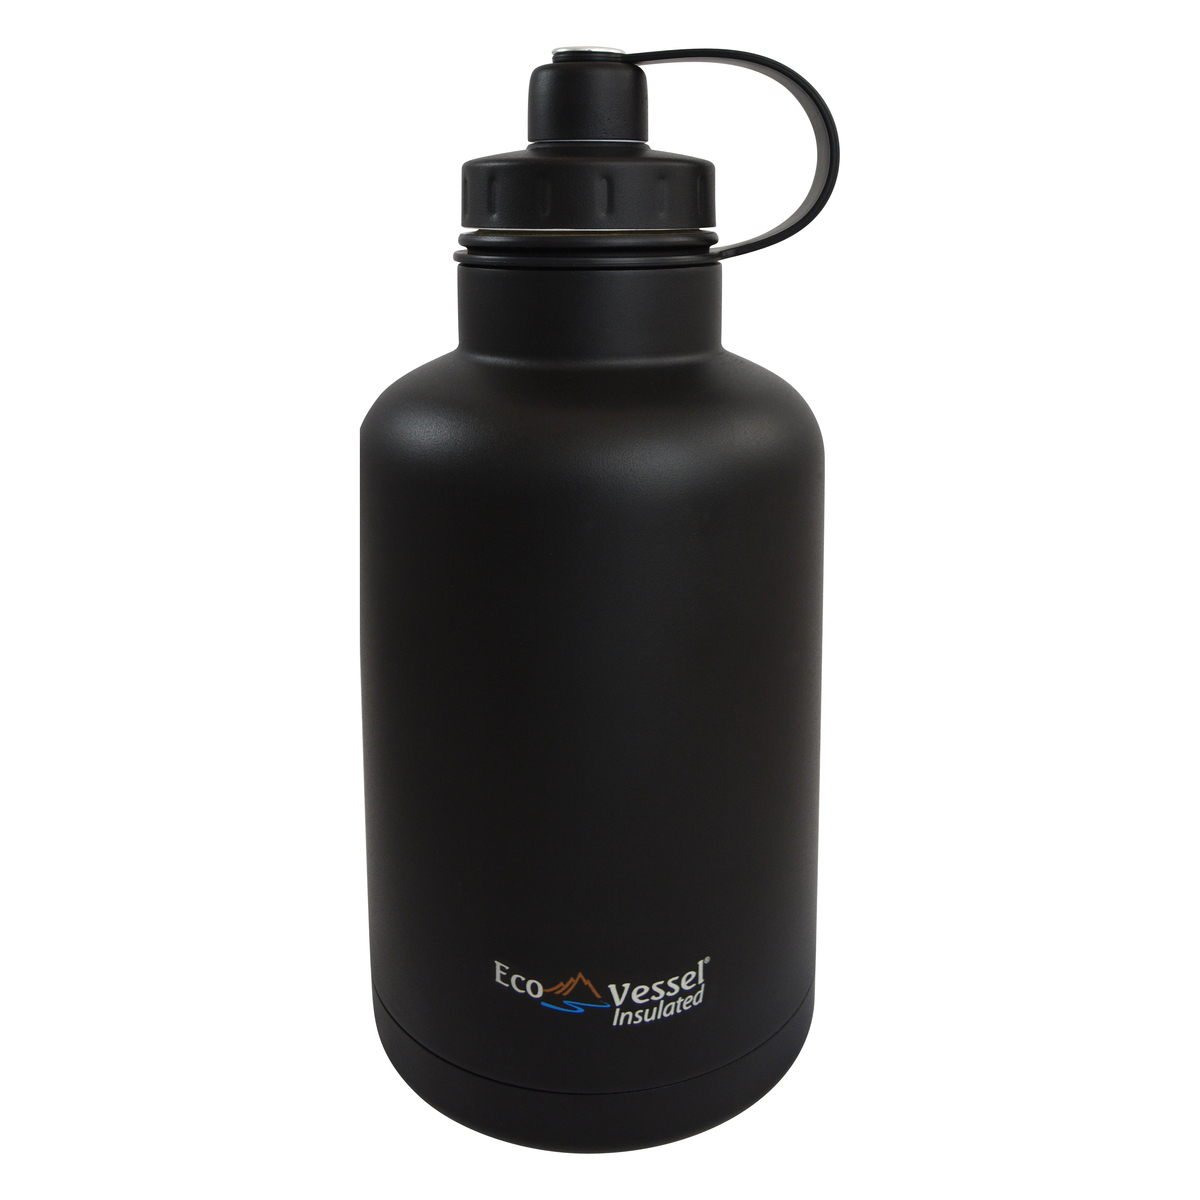 Eco Vessel Boss Black Shadow Stainless Steel Triple Insulated 64 Ounce Growler with Infuser